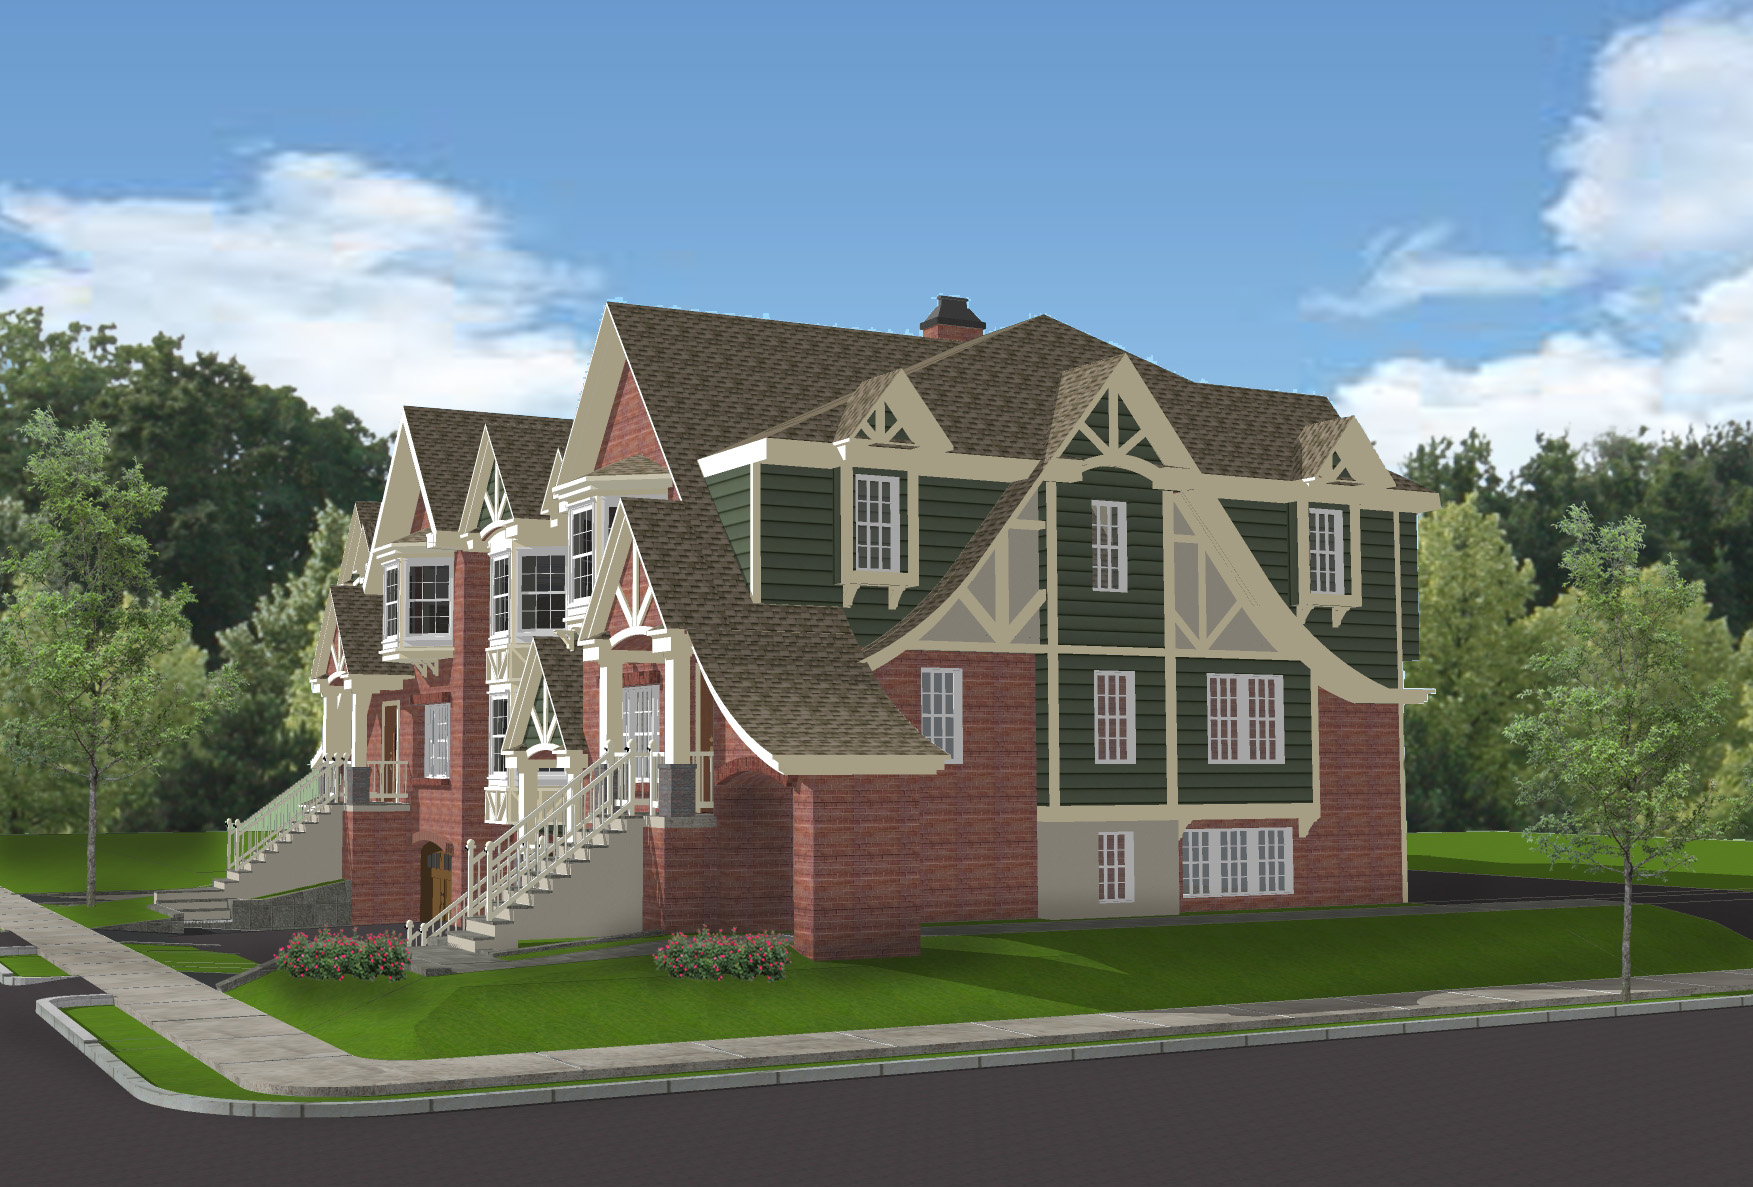 south 10th -Rendering 4p (1)